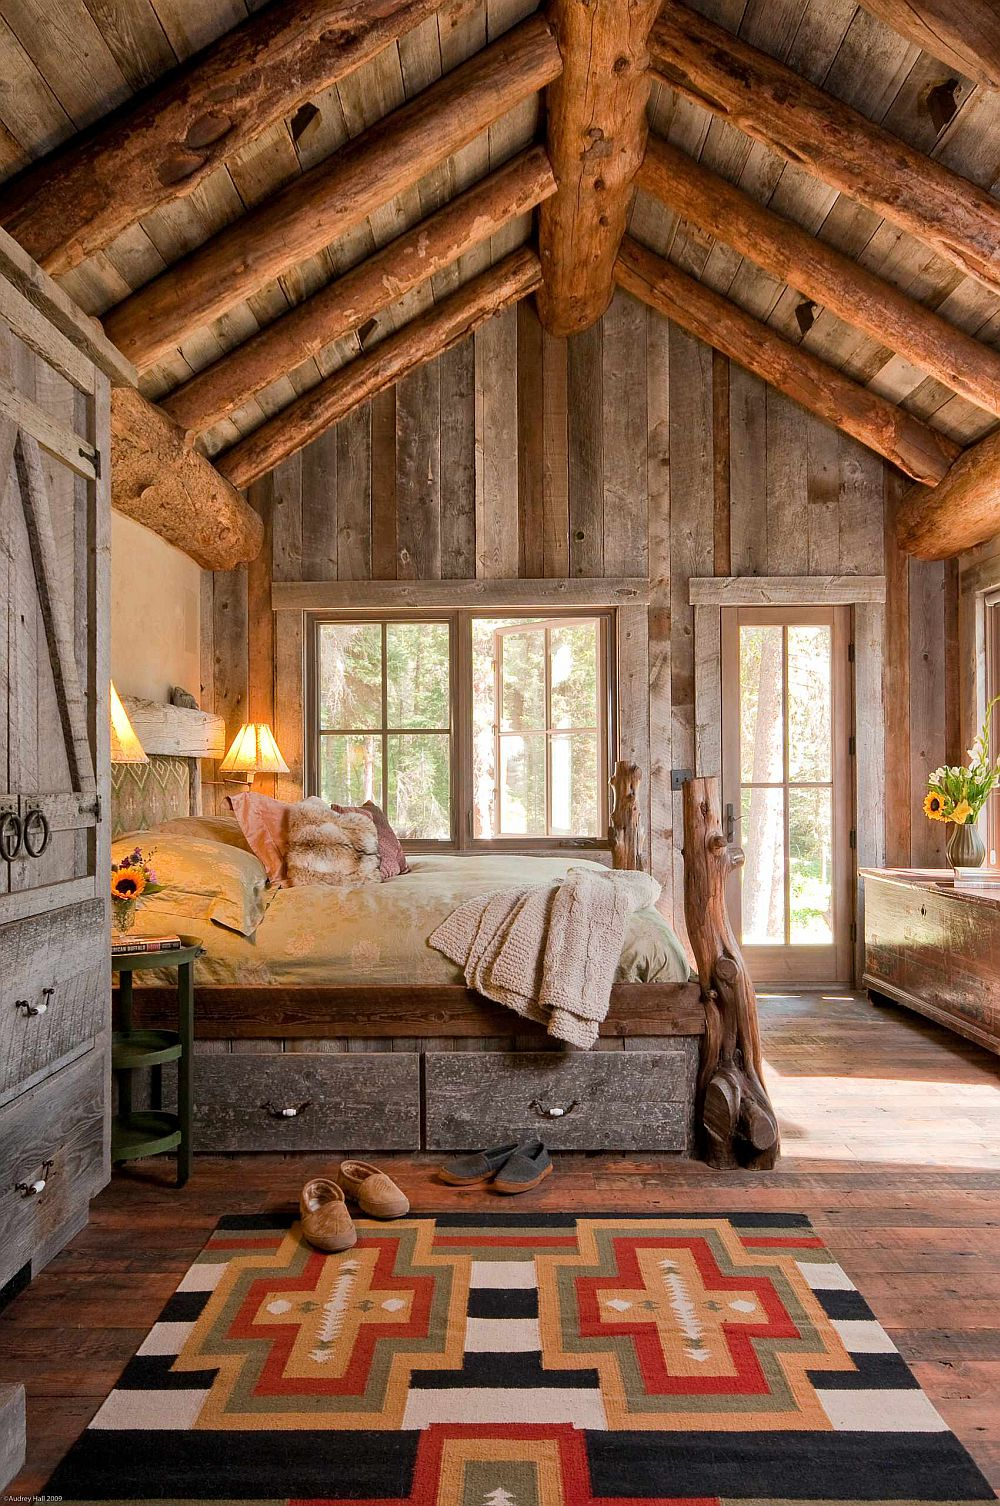 Log-like ceiling beams are perfect for the double-height rustic bedroom in wood